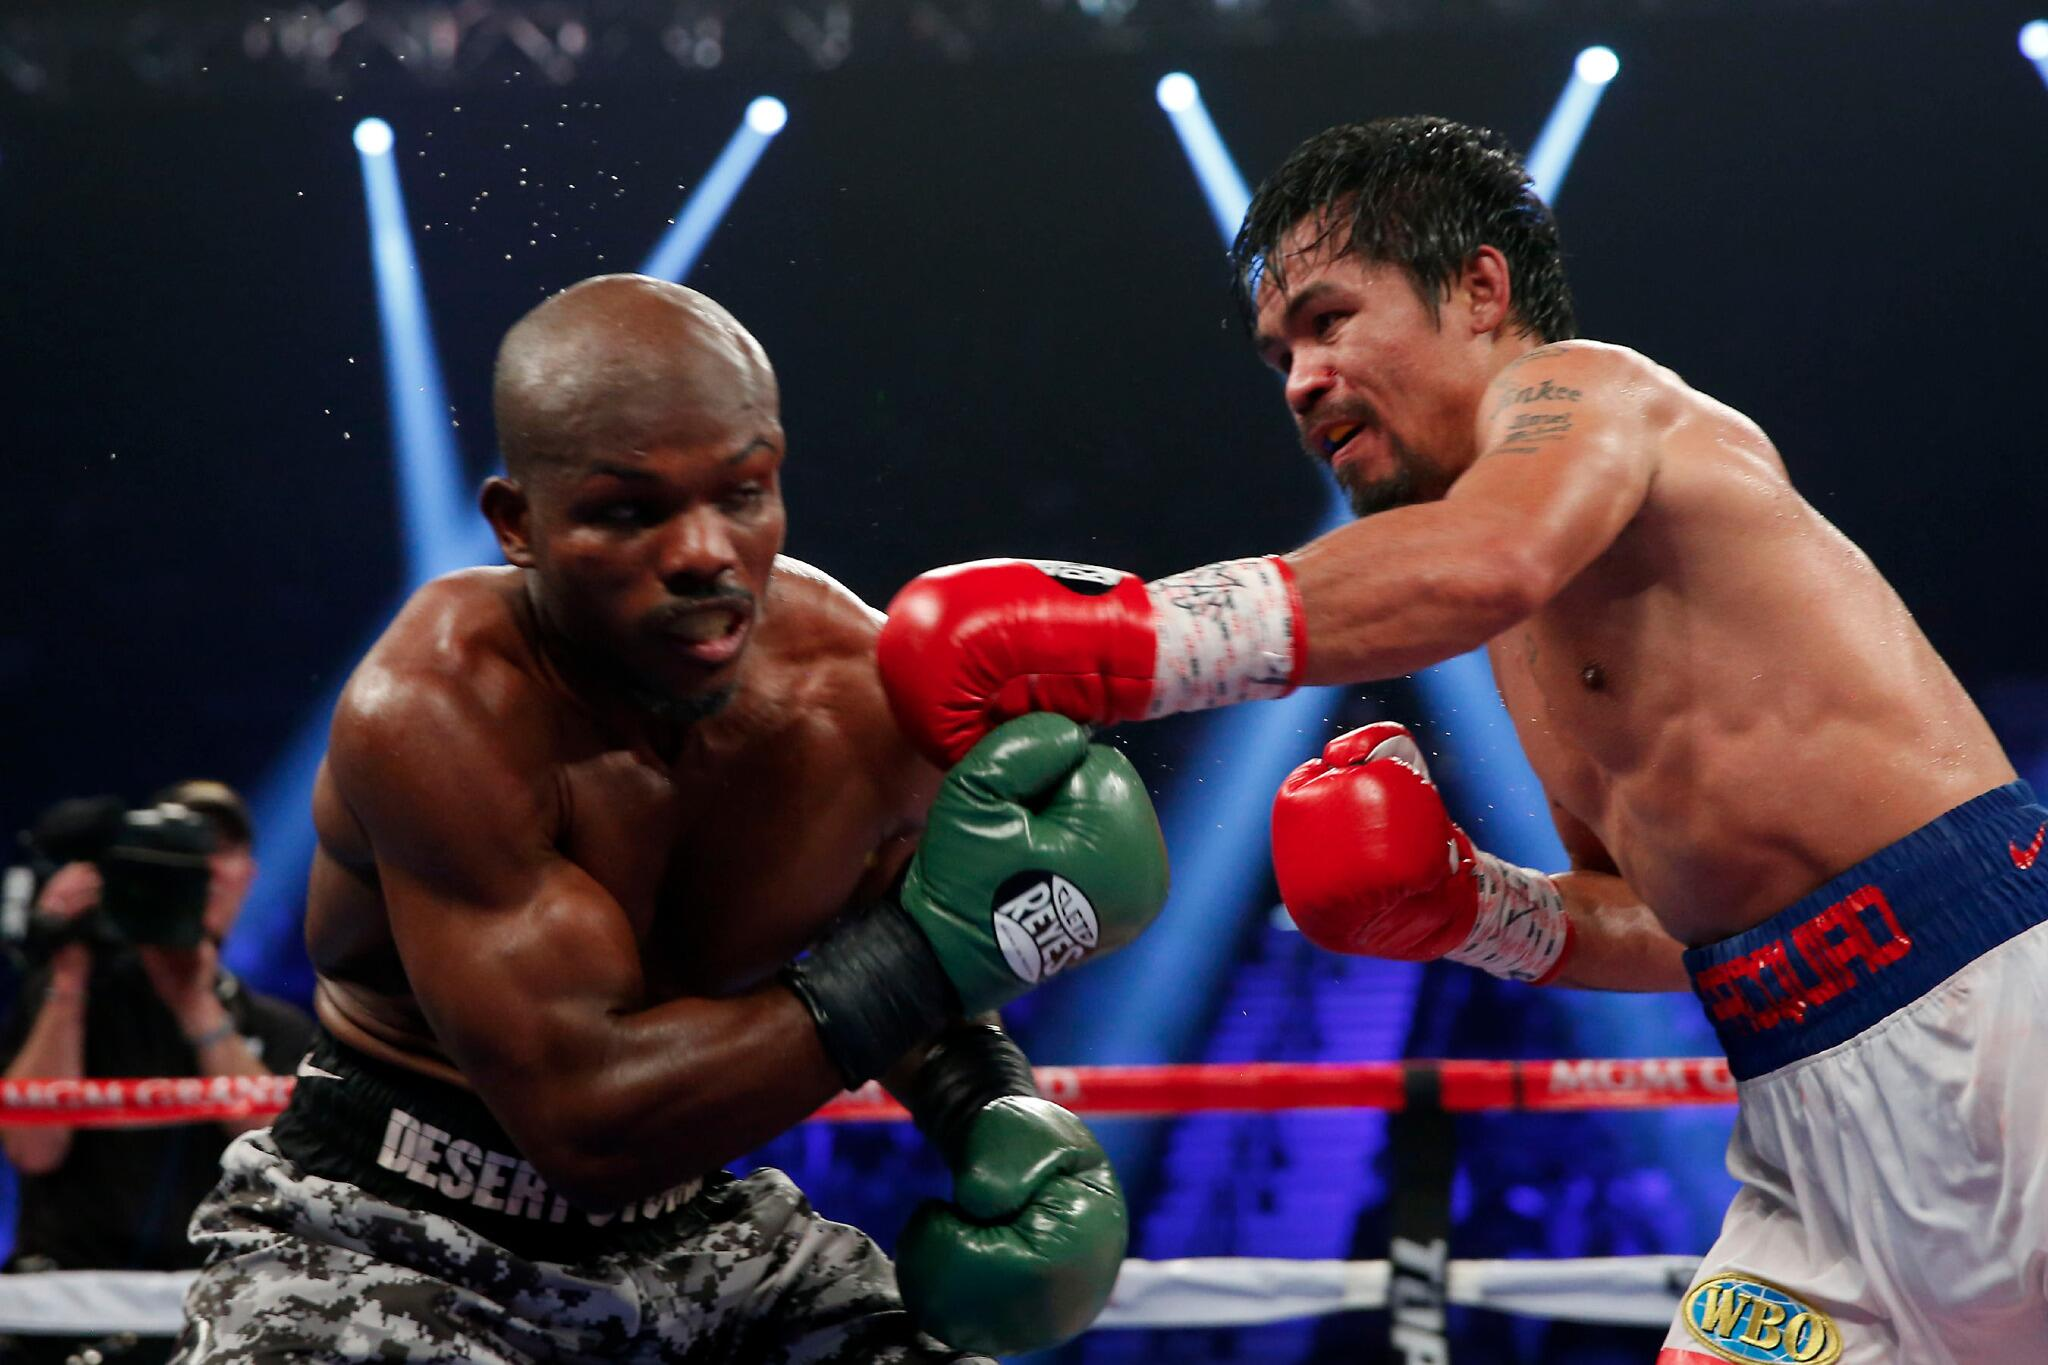 Via @HBOboxing: MannyPacquiao reclaims the welterweight title and improves to 56-5-2 in his career. http://t.co/jVGa1TJQ27